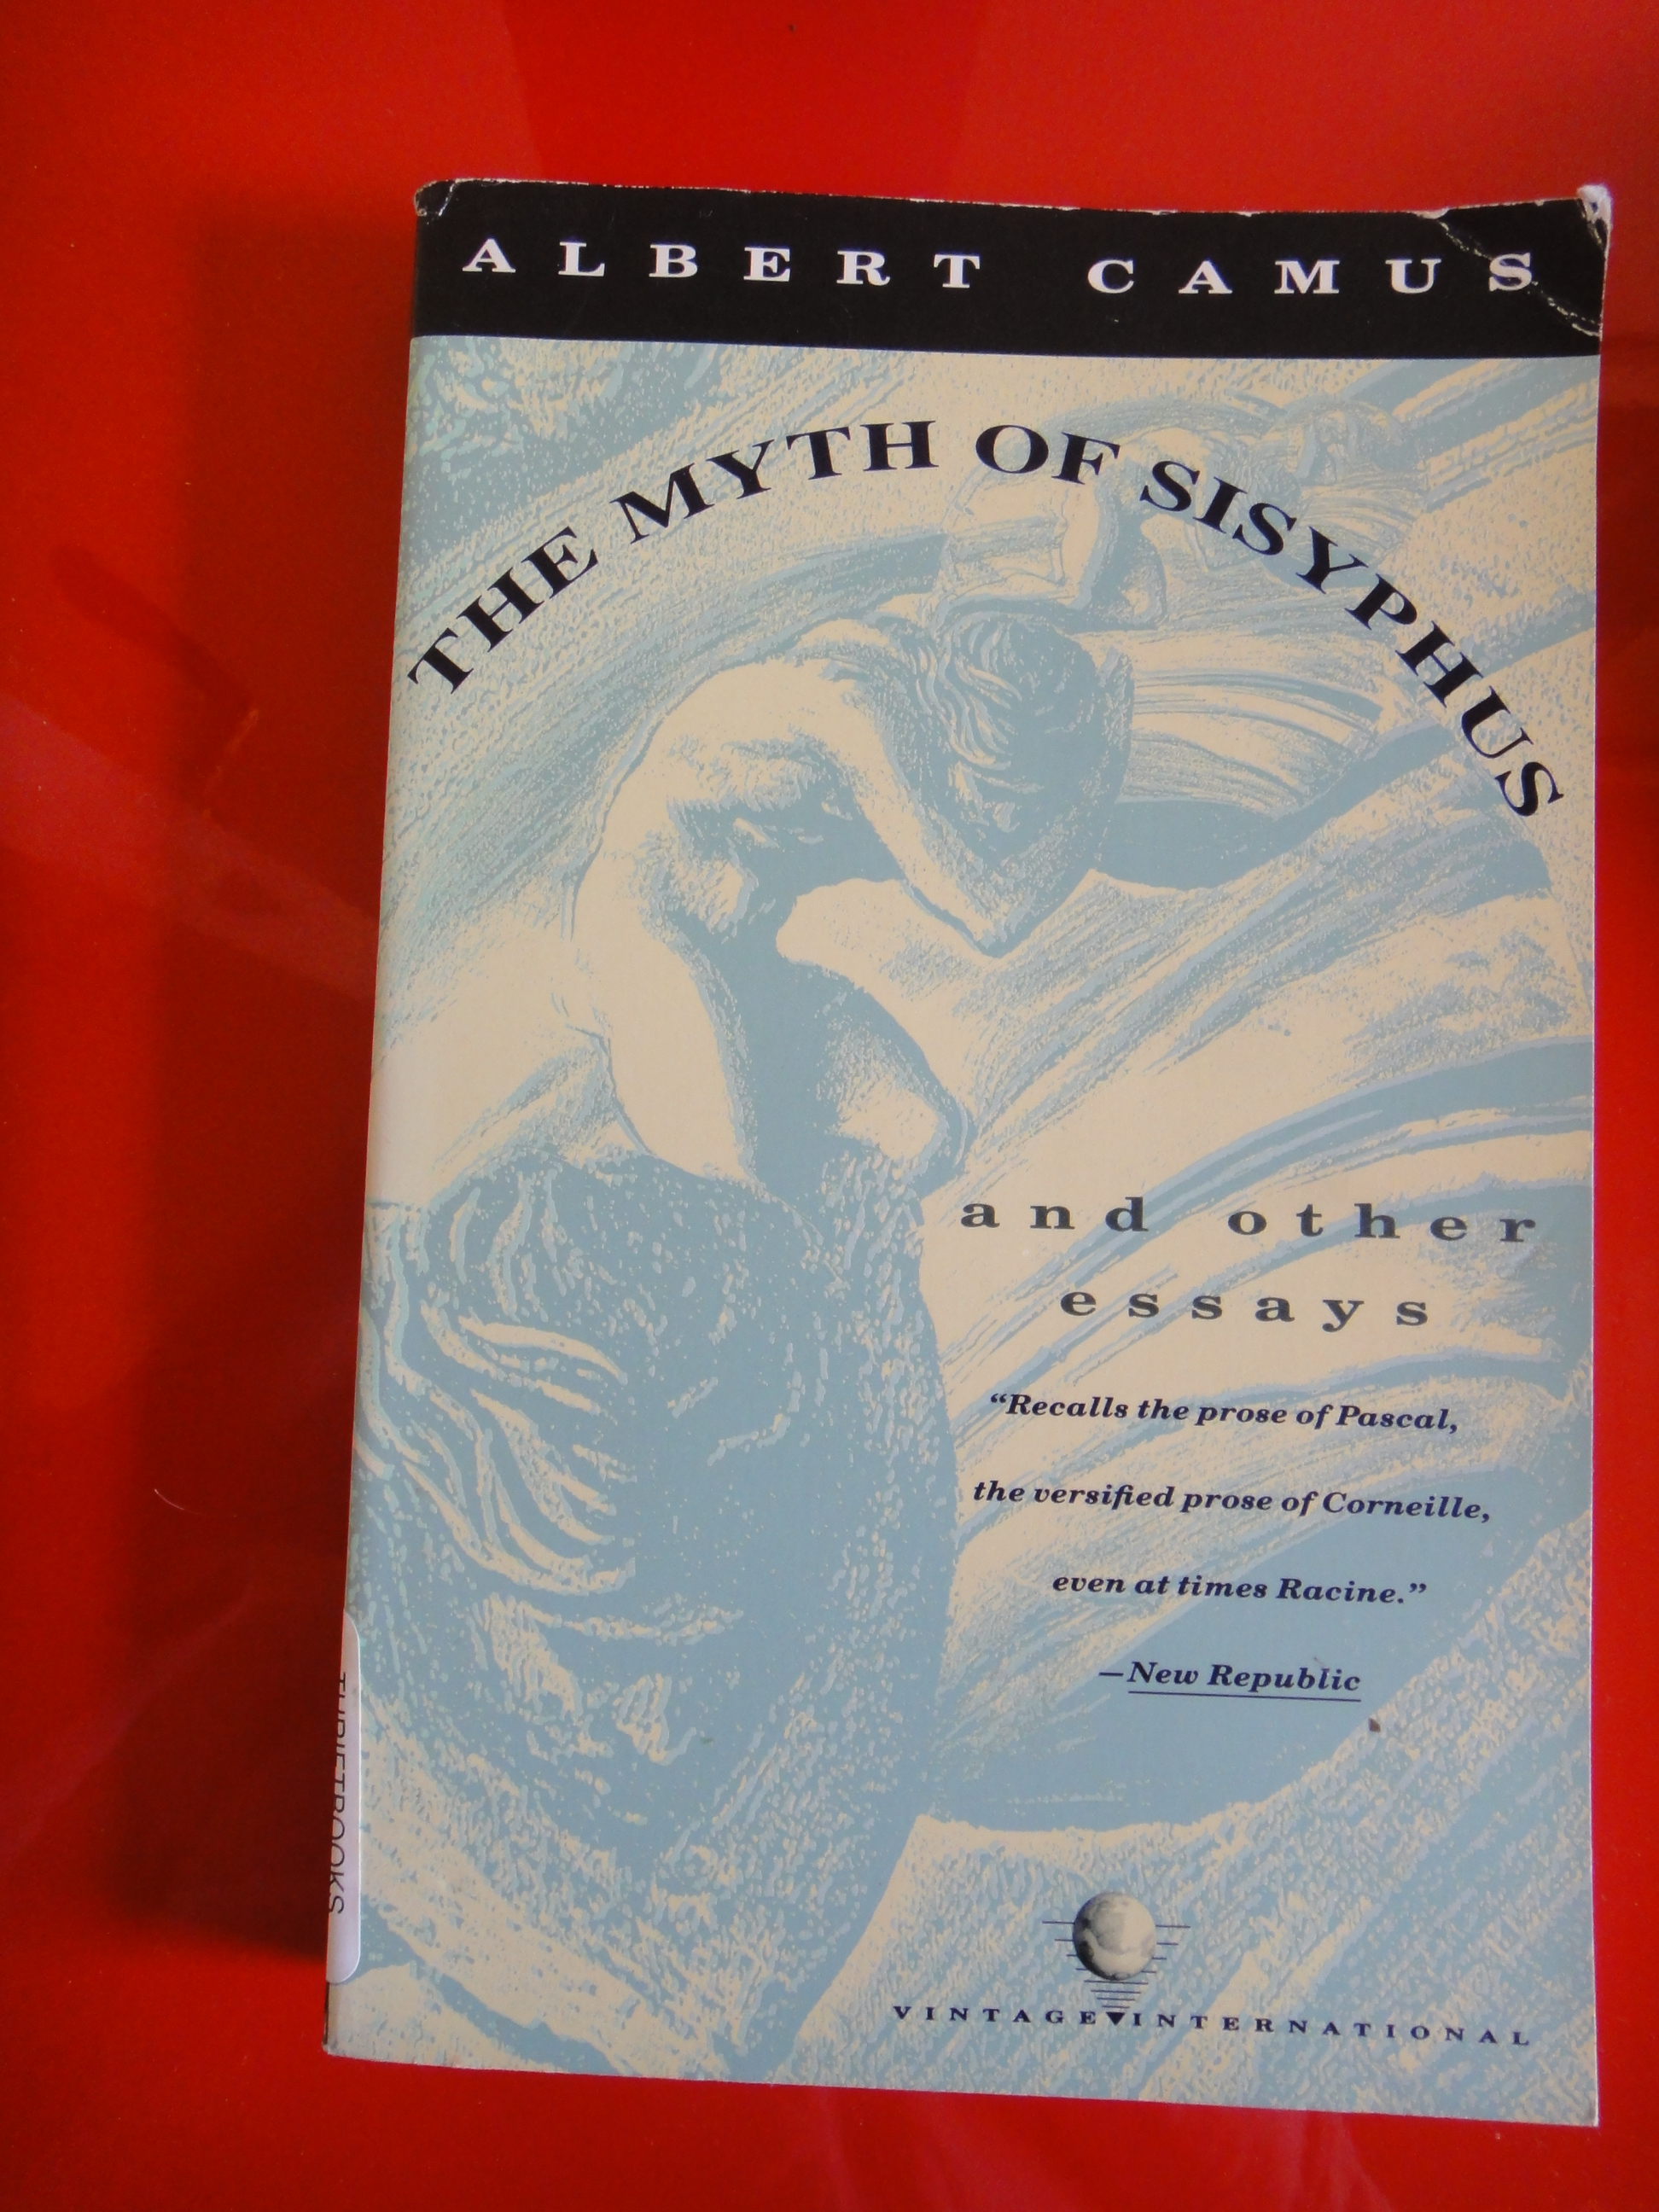 christine ps stocke unabridged adventure series the myth of sisyphus and other essays